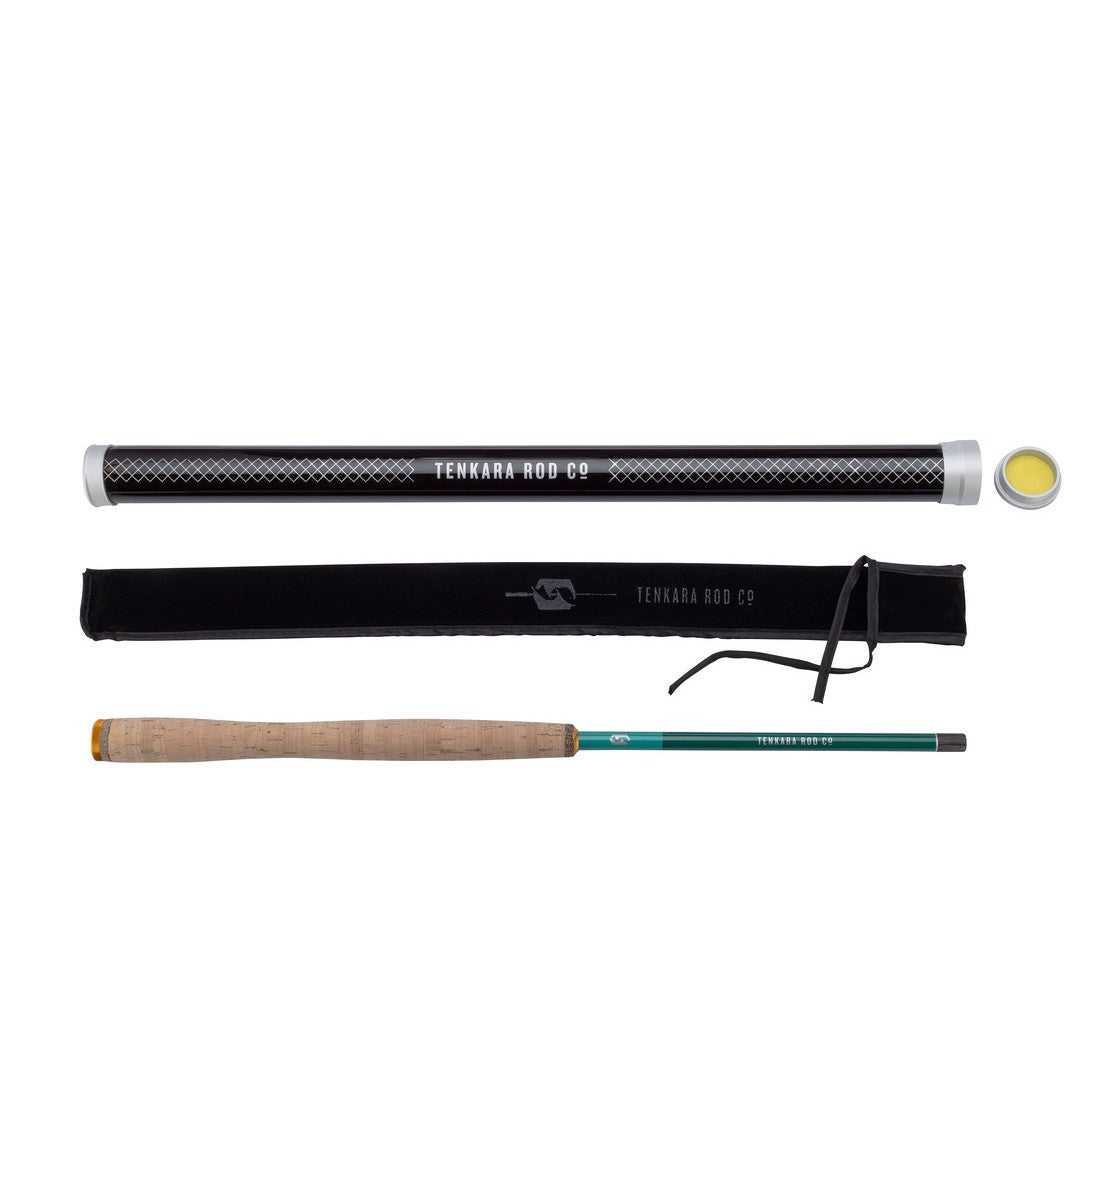 Tenkara Sierra Package - Outdoor Living/Travel - Iron and Resin